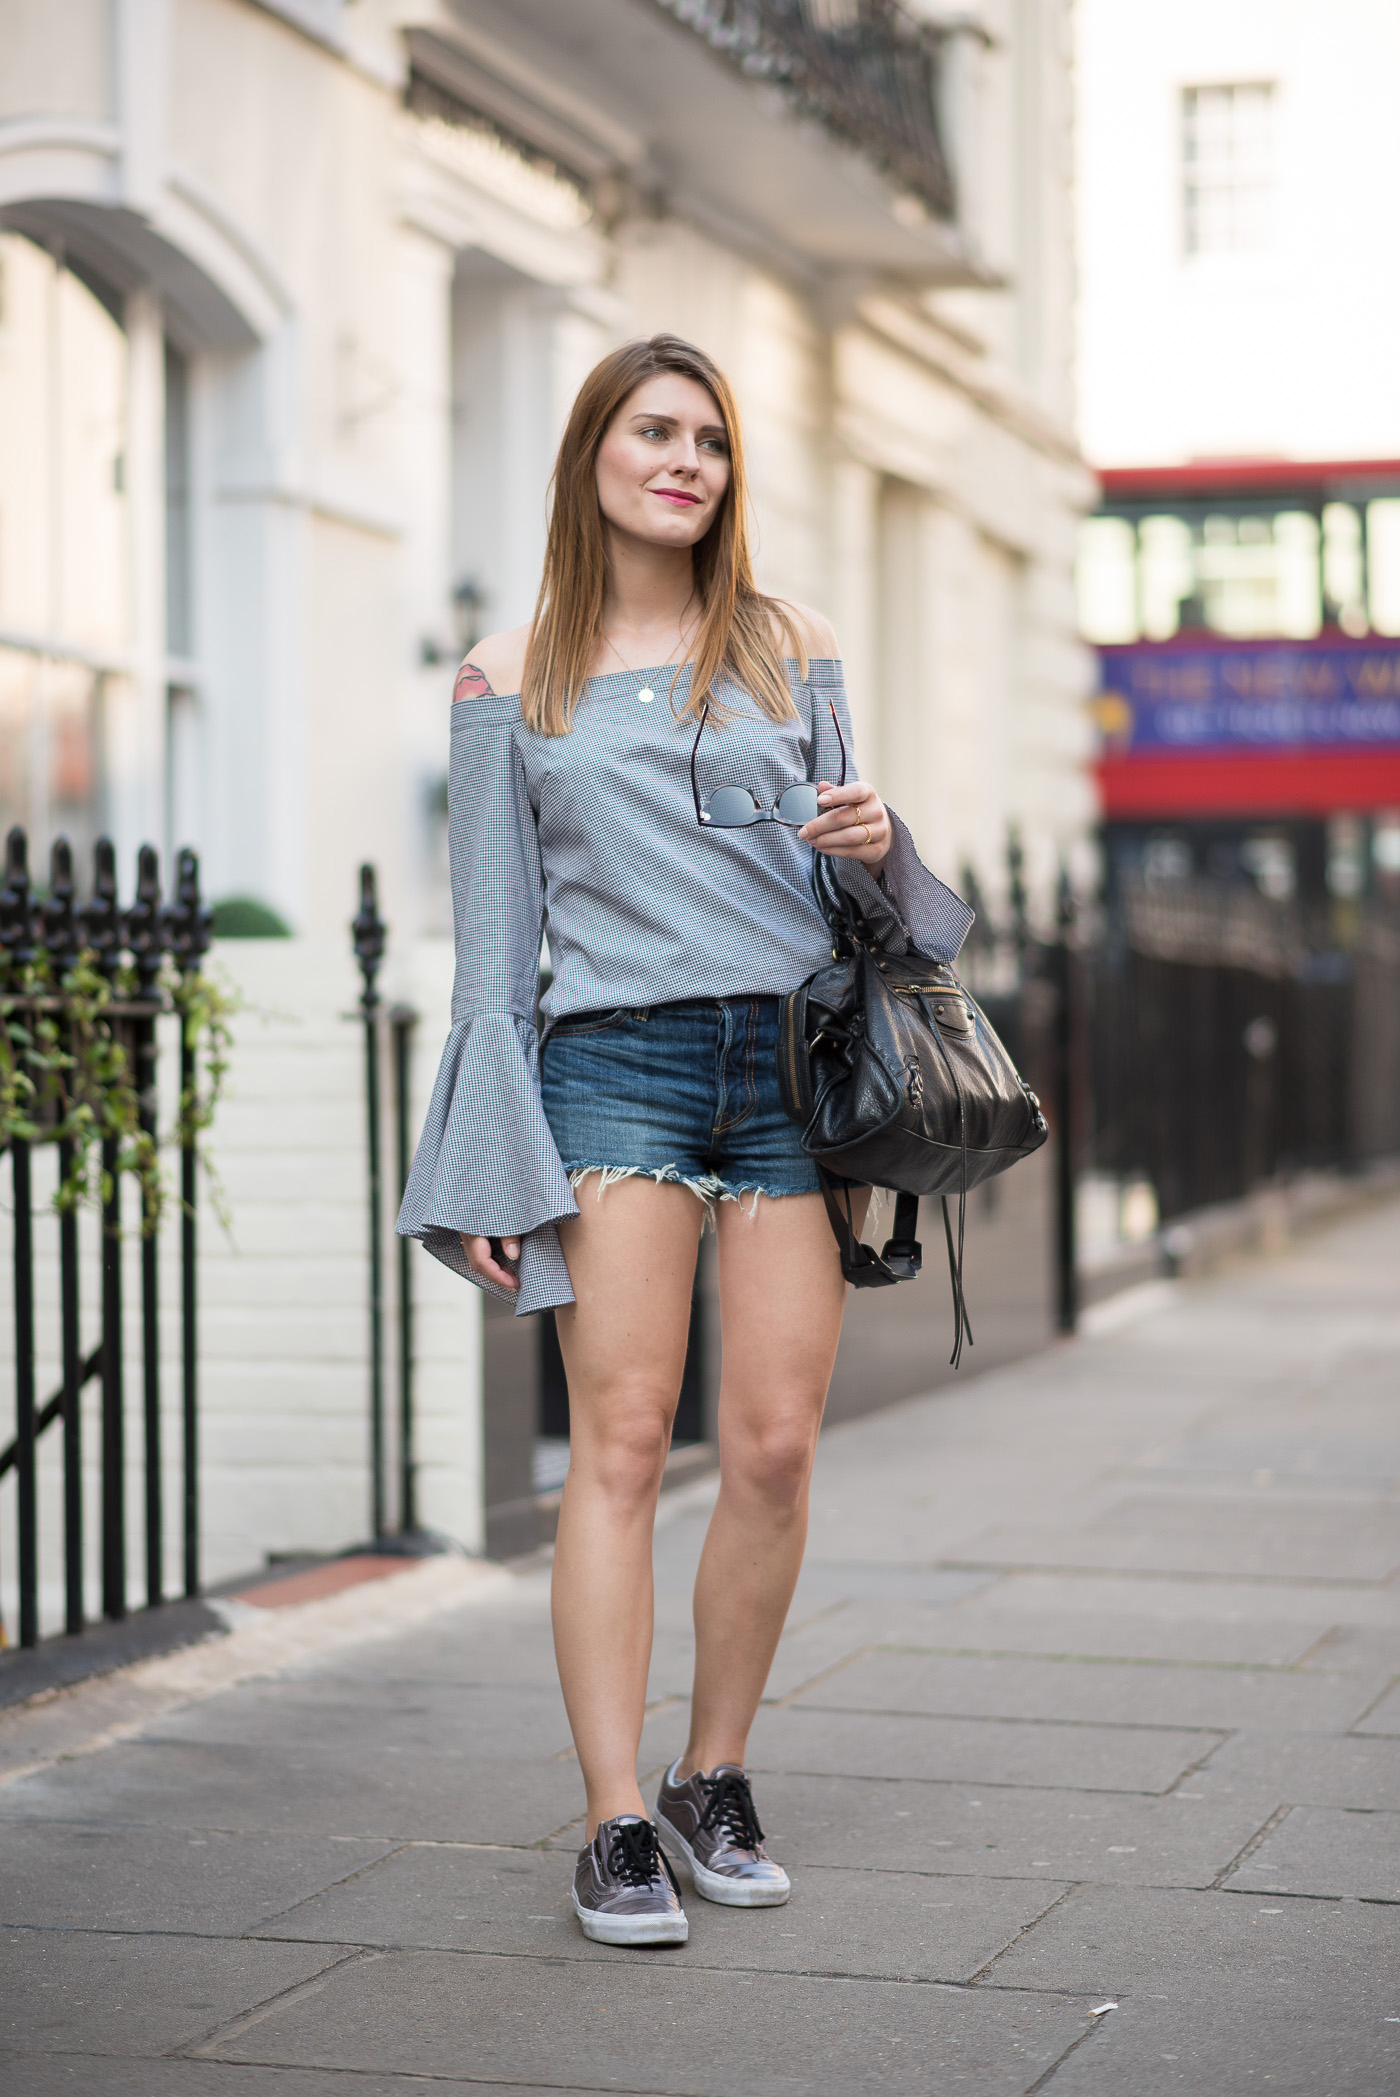 London_Summer_Outfit_3